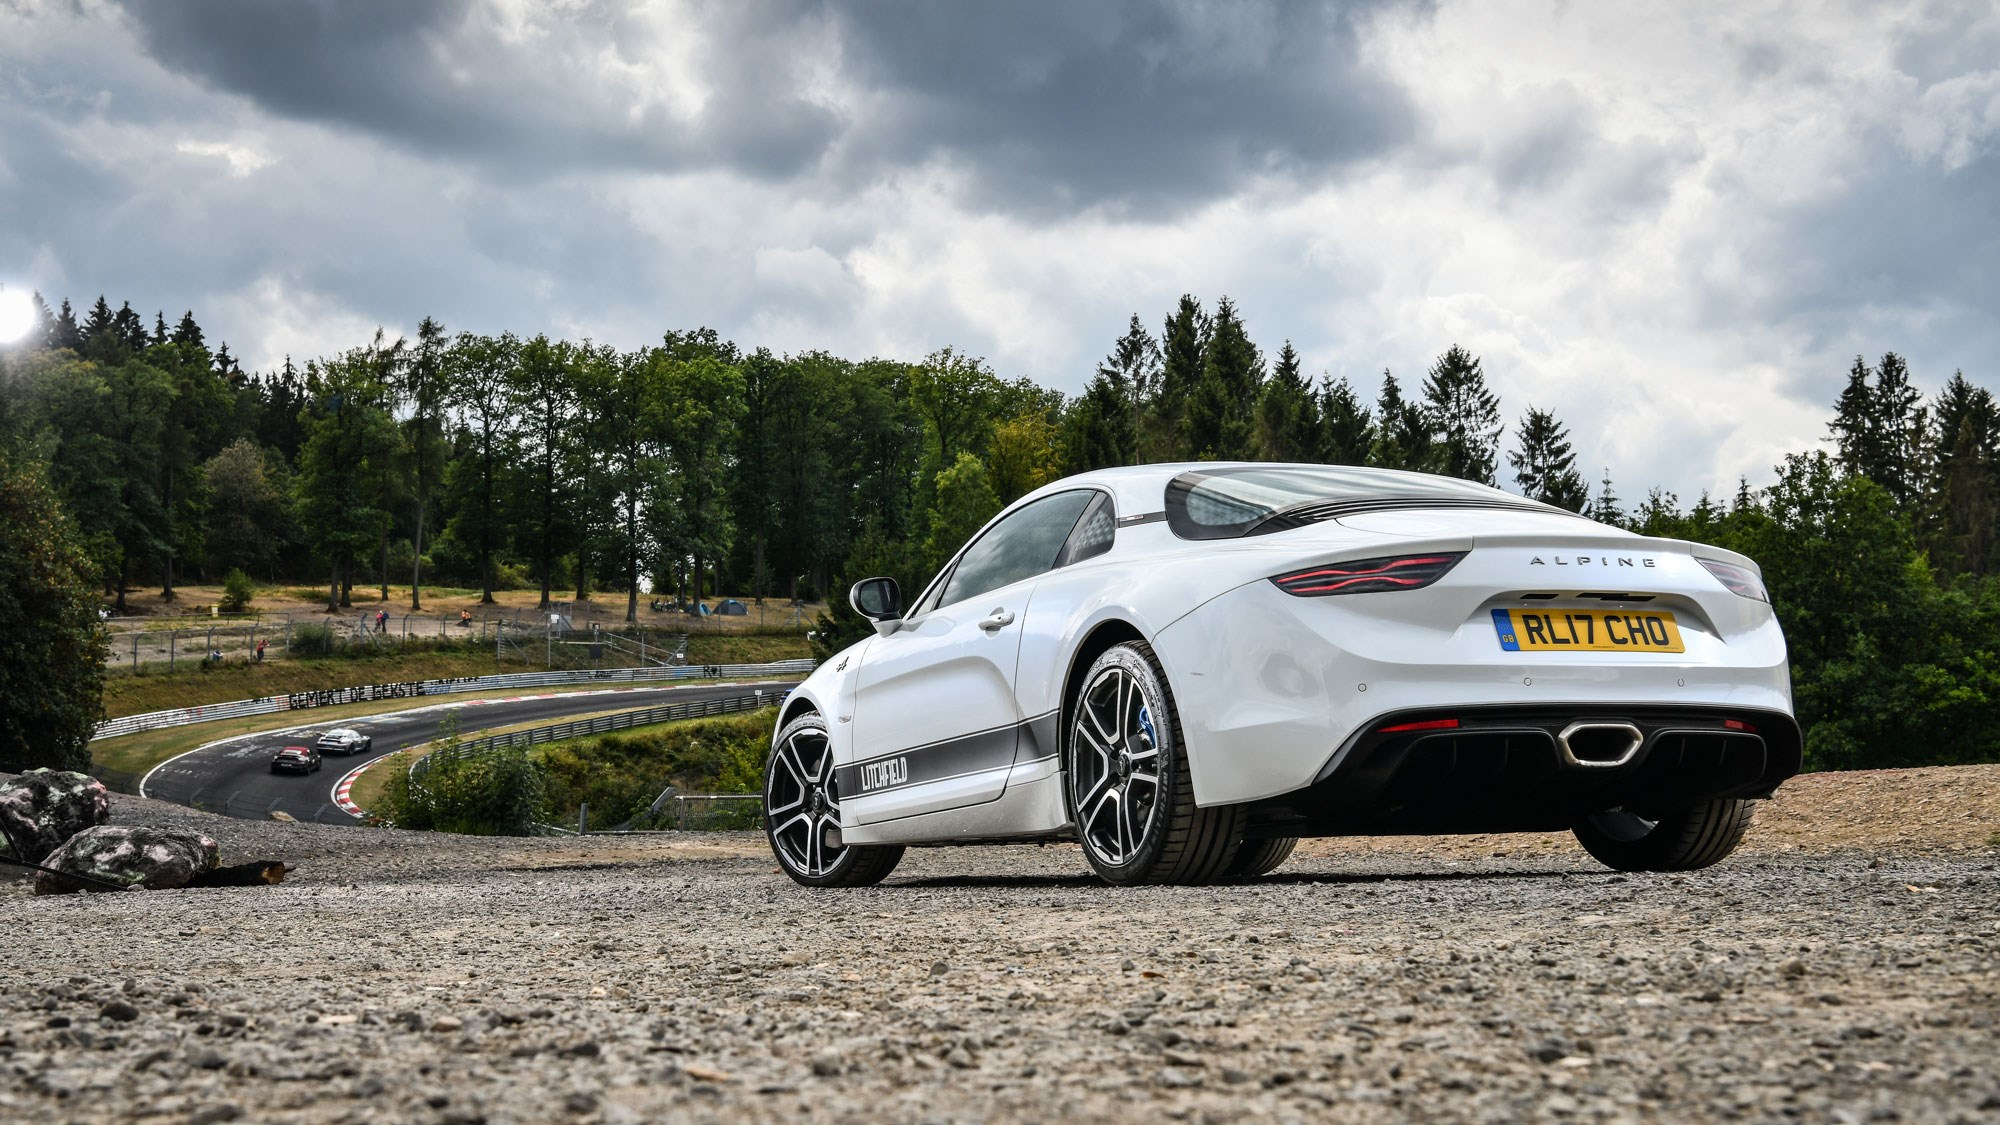 Alpine A110 review: we test the Litchfield upgrade